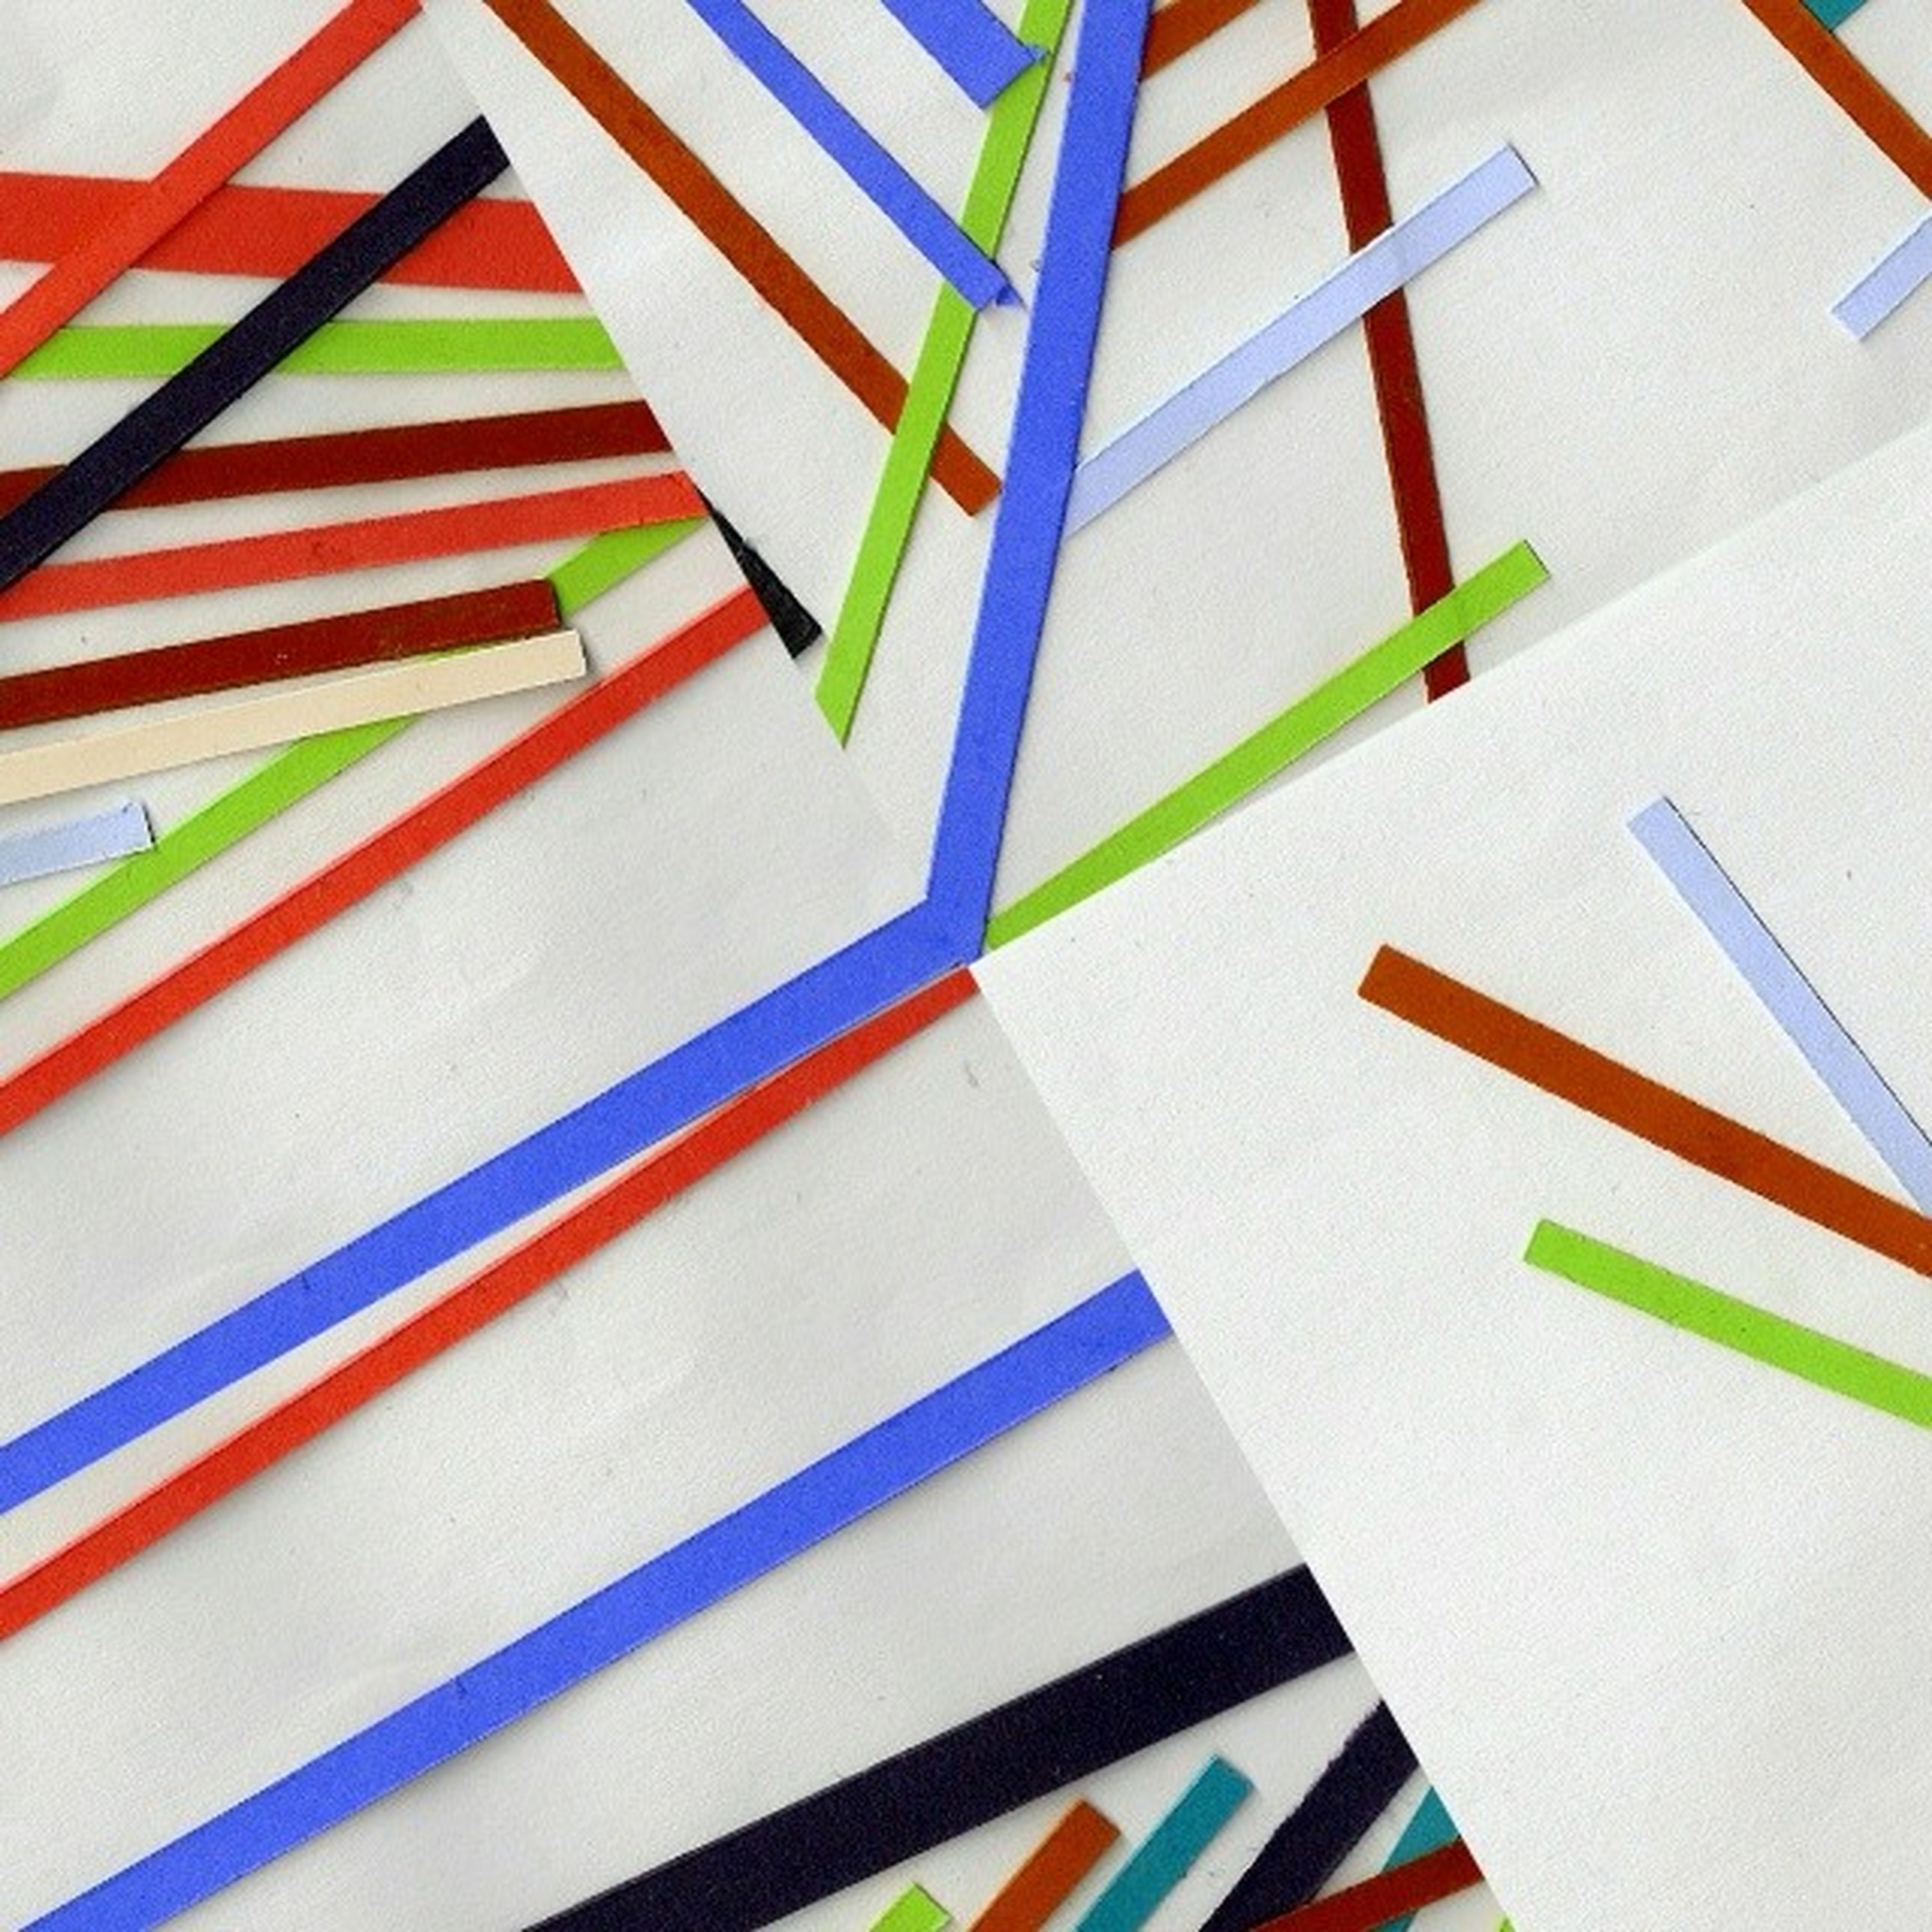 pattern, multi colored, low angle view, railing, built structure, architecture, steps, steps and staircases, striped, close-up, no people, day, design, blue, yellow, high angle view, in a row, indoors, colorful